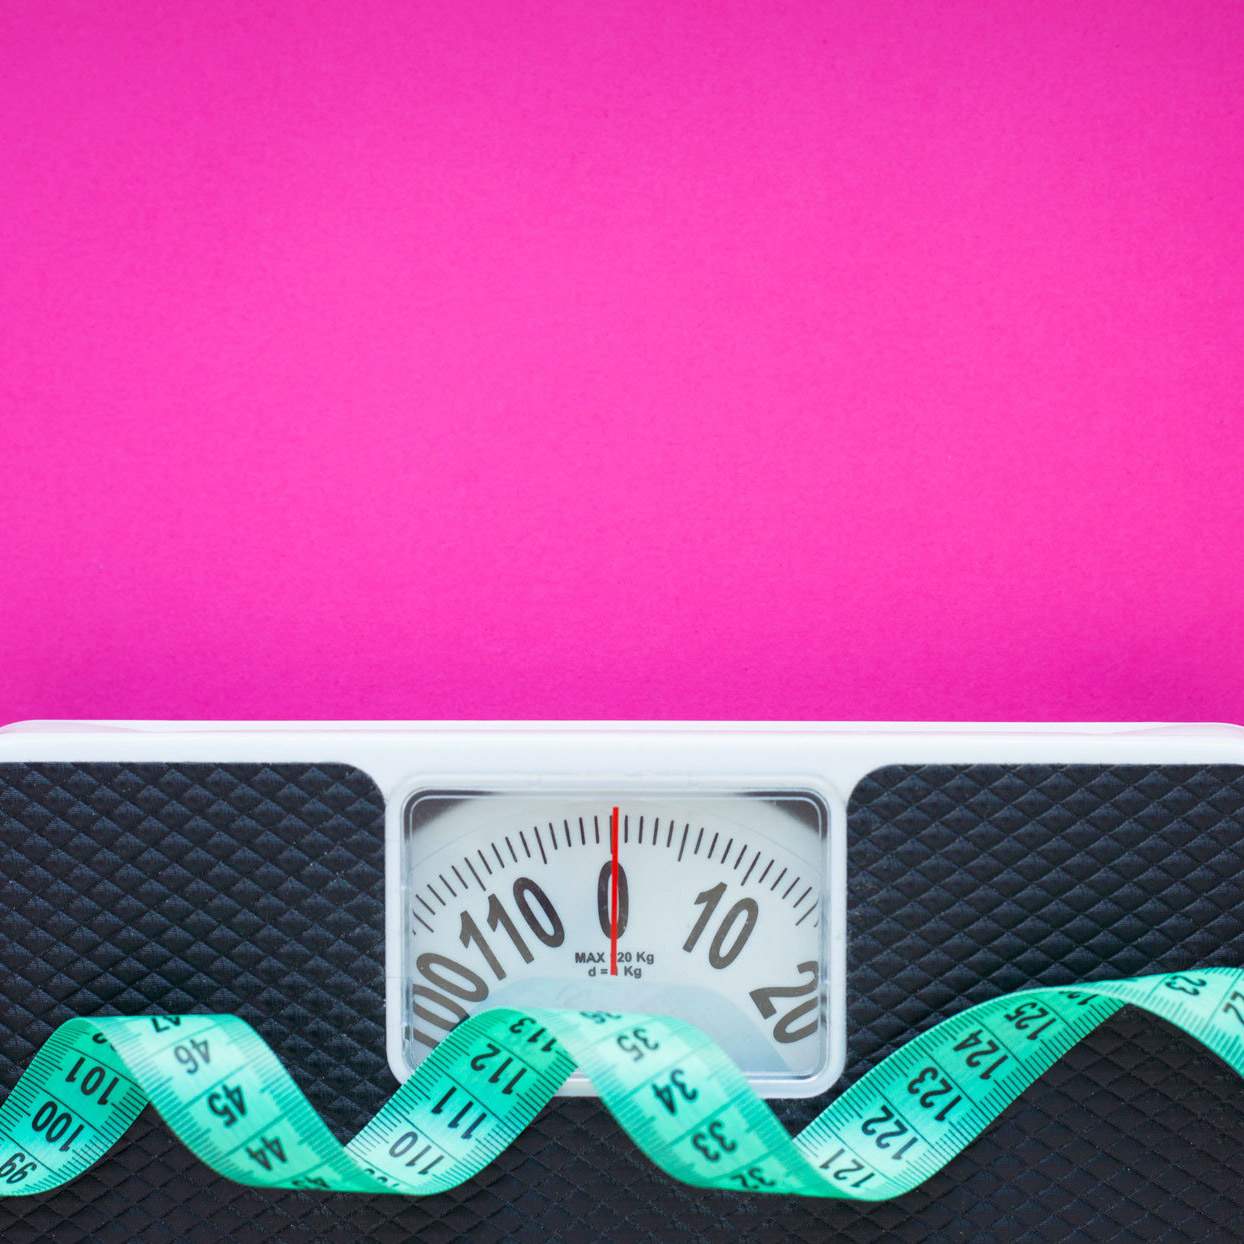 3 Key Habits for Actually Maintaining Your Weight Loss